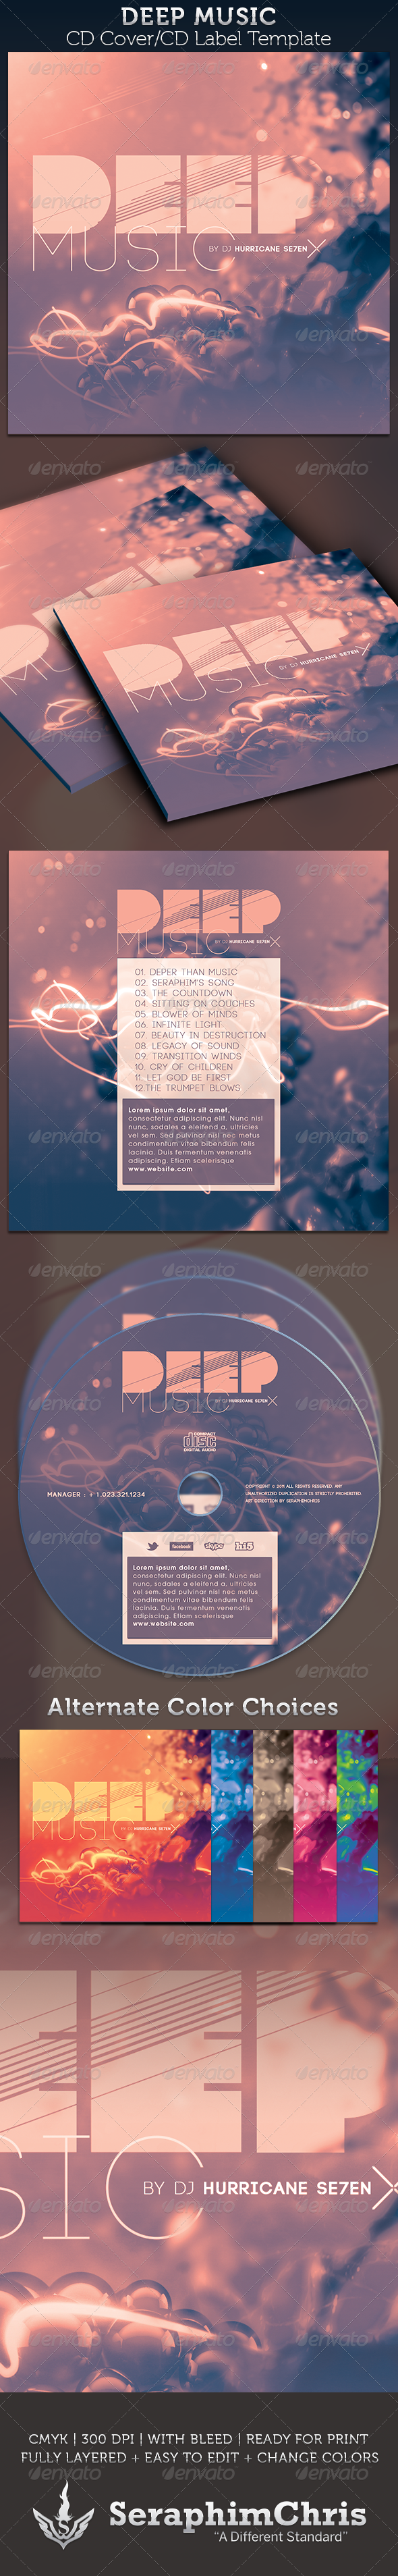 GraphicRiver Deep Music CD Cover Artwork Template 3046872